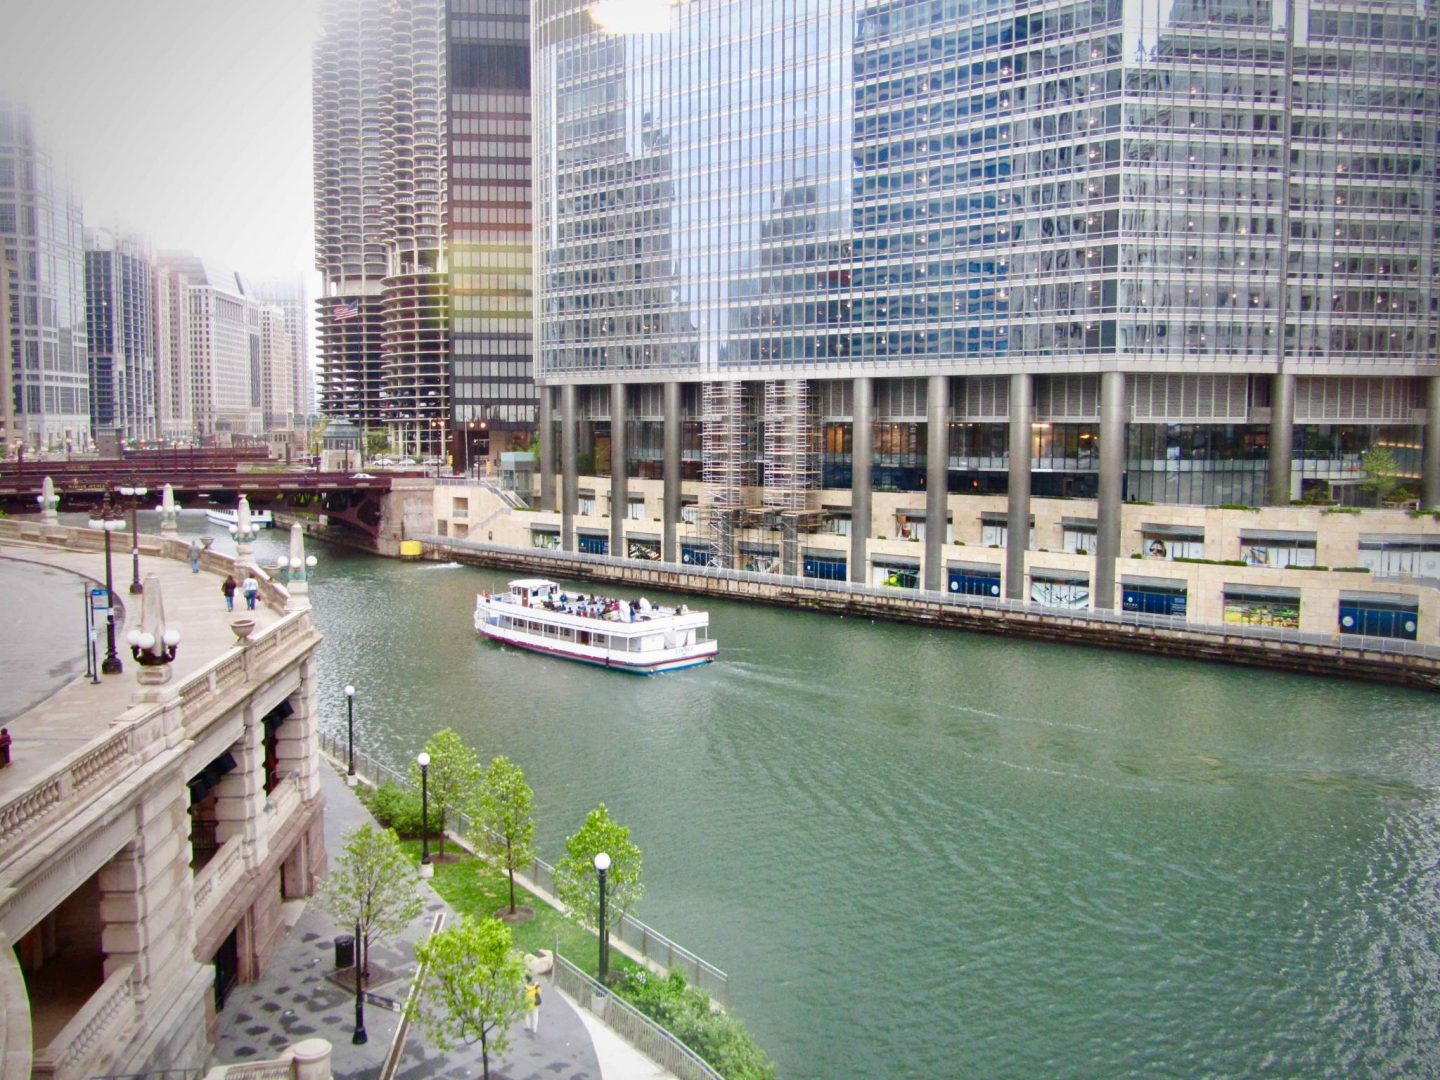 Wendellas Architecture Boat Tour ... 3-day Chicago Itinerary ... The Spectacular Adventurer